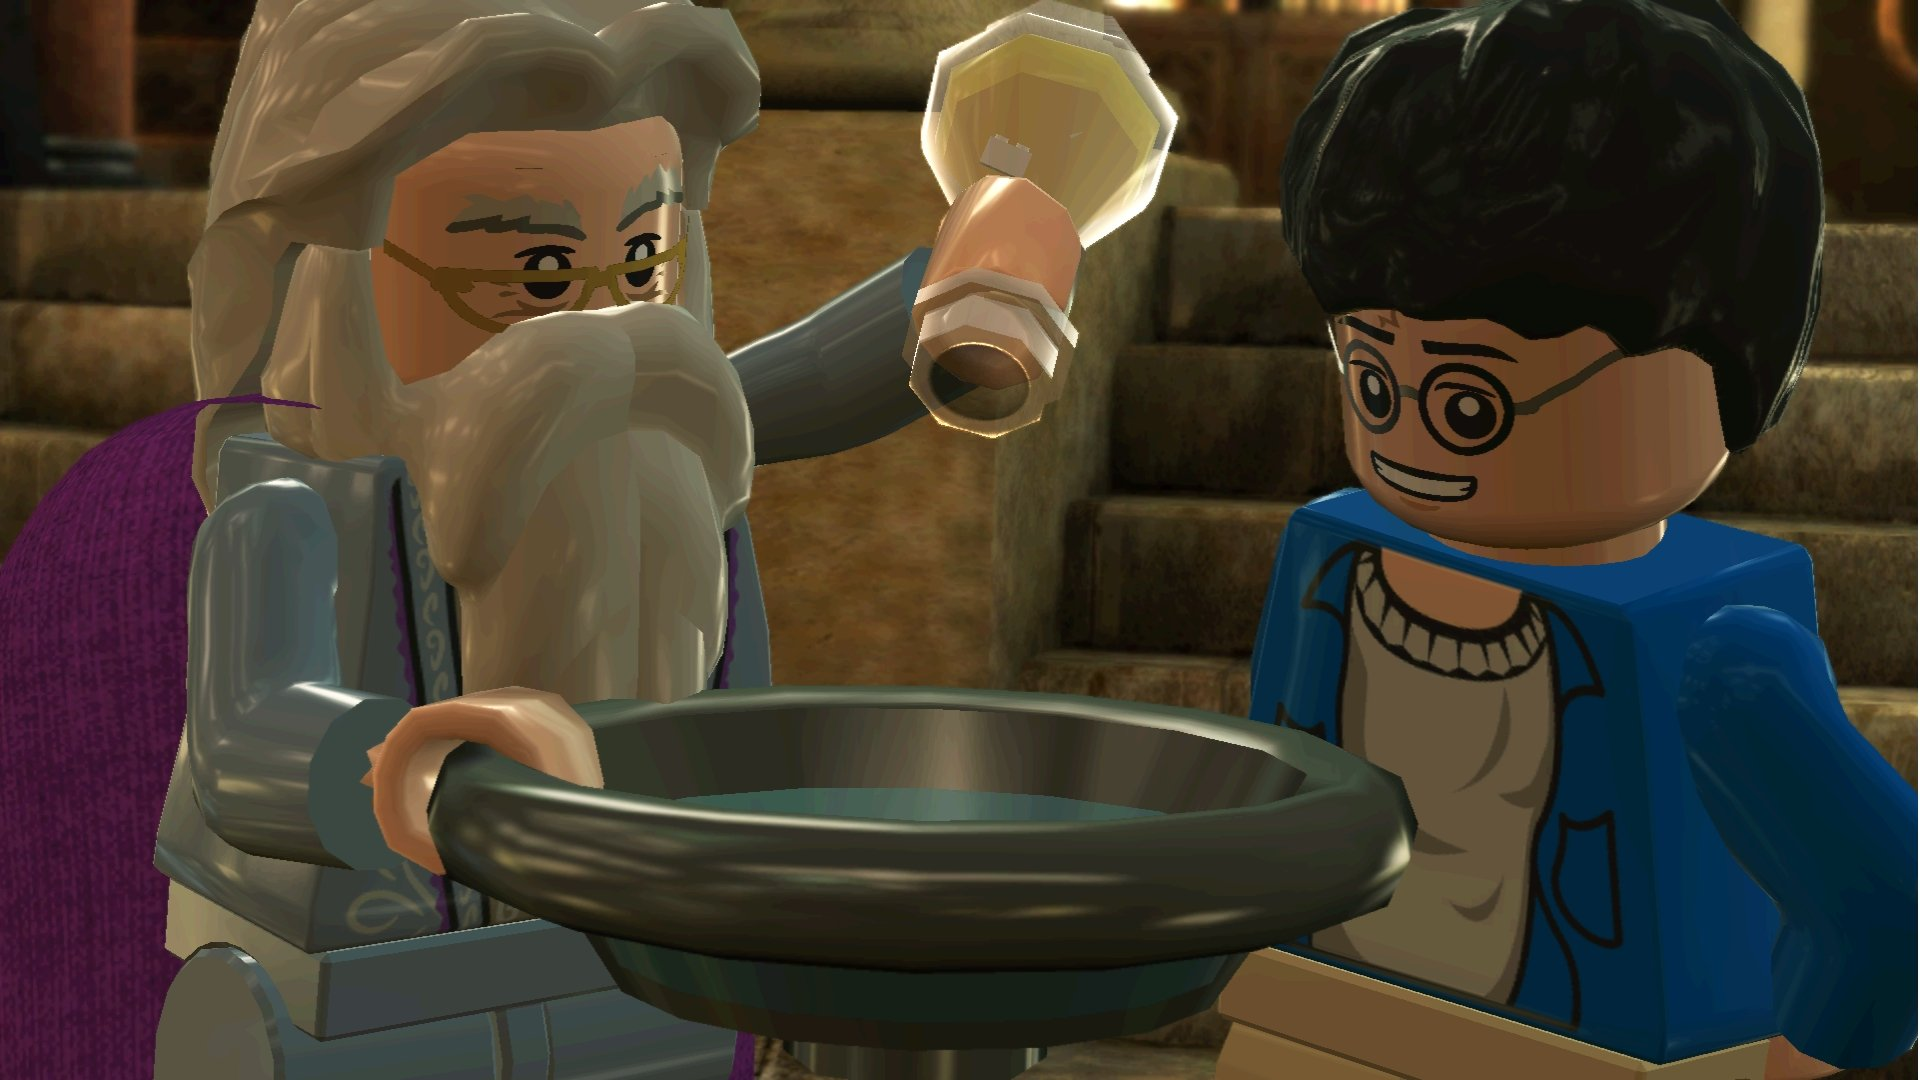 Lego Harry Potter: Years 5-7, Lego, Harry Potter, Years 5-7, Xbox 360, PS3, PS Vita, 3DS, Wii, PC, Video Game, Game, Review, Reviews, Screenshot